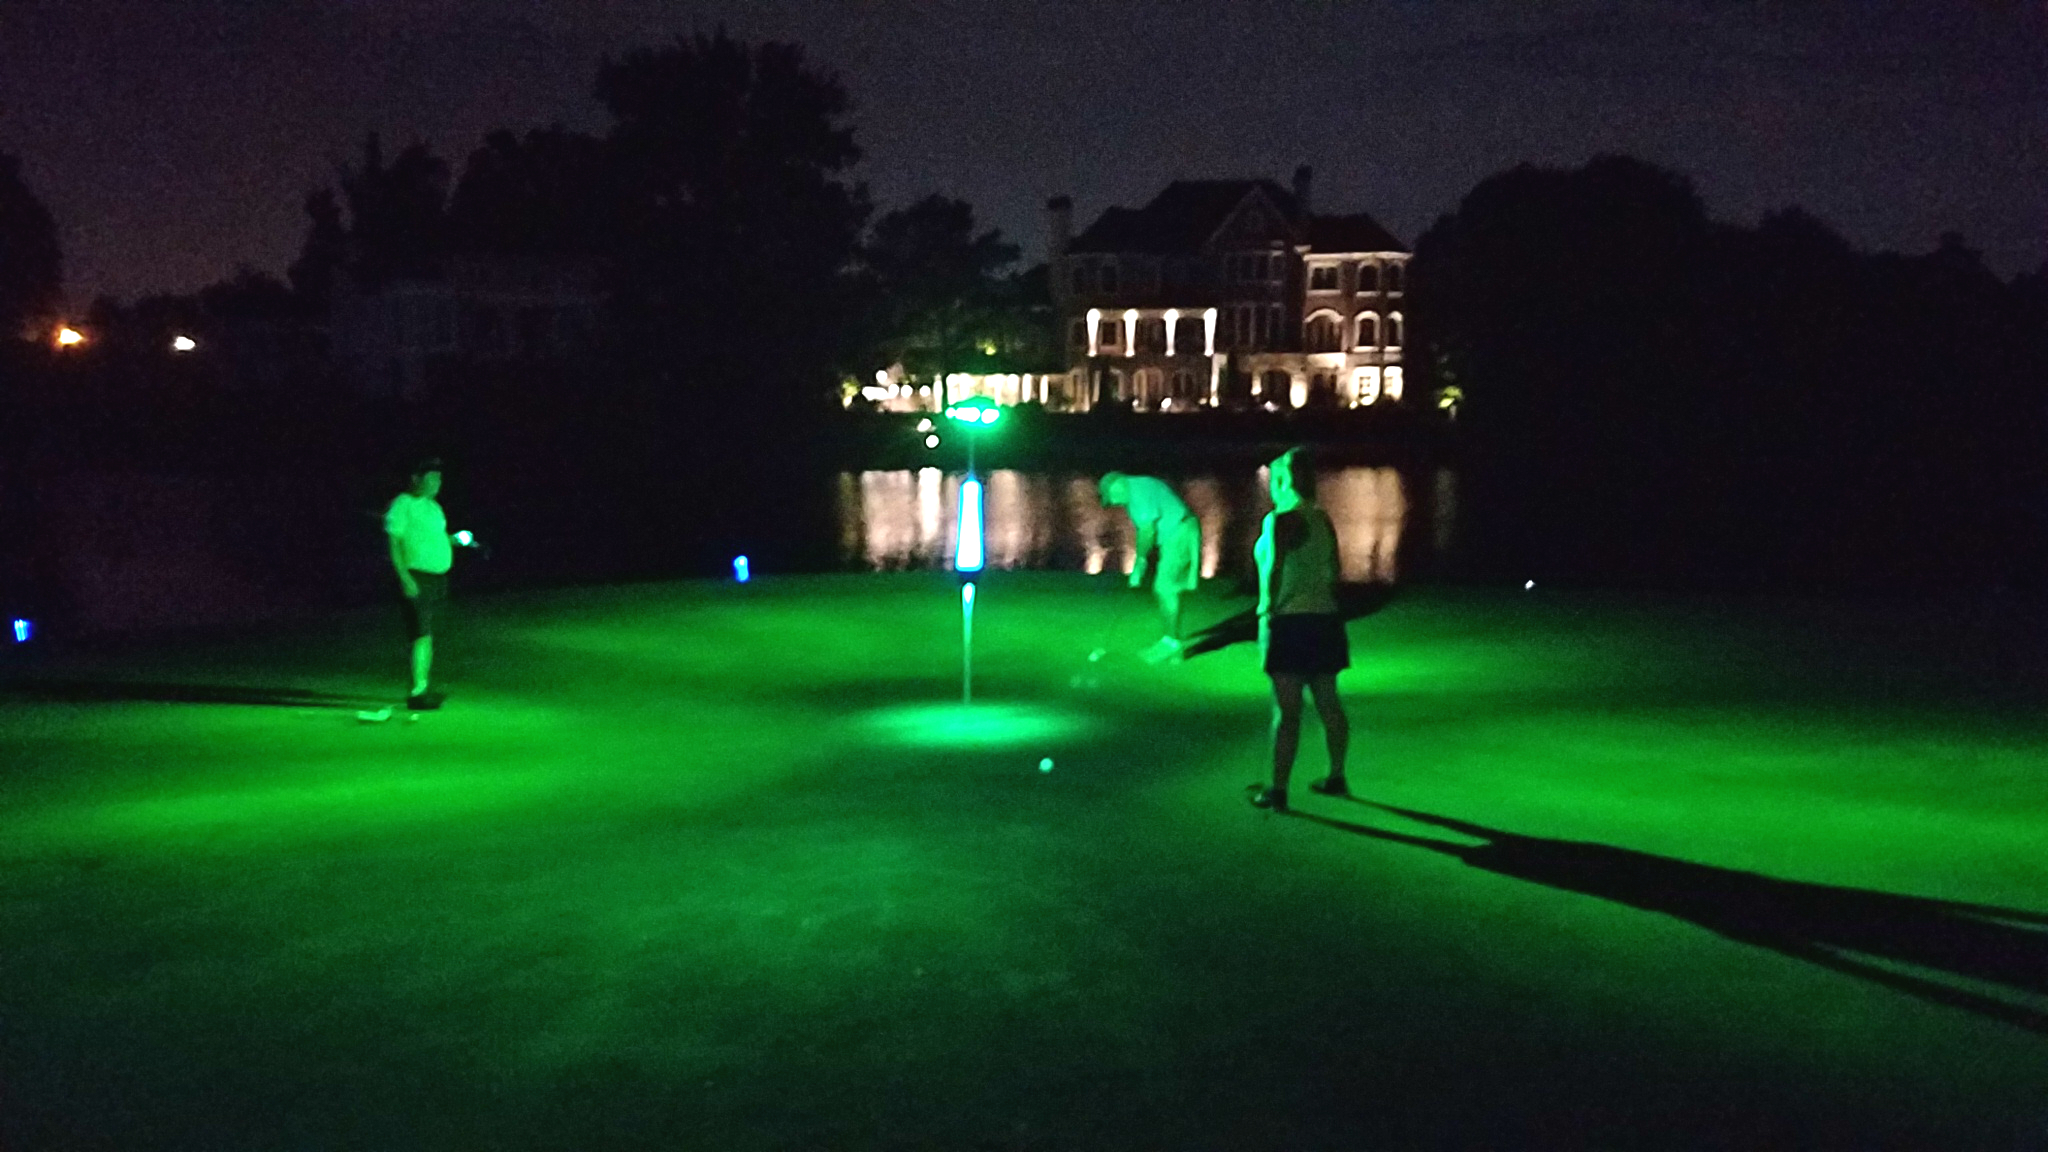 lights designed to light up putting greens